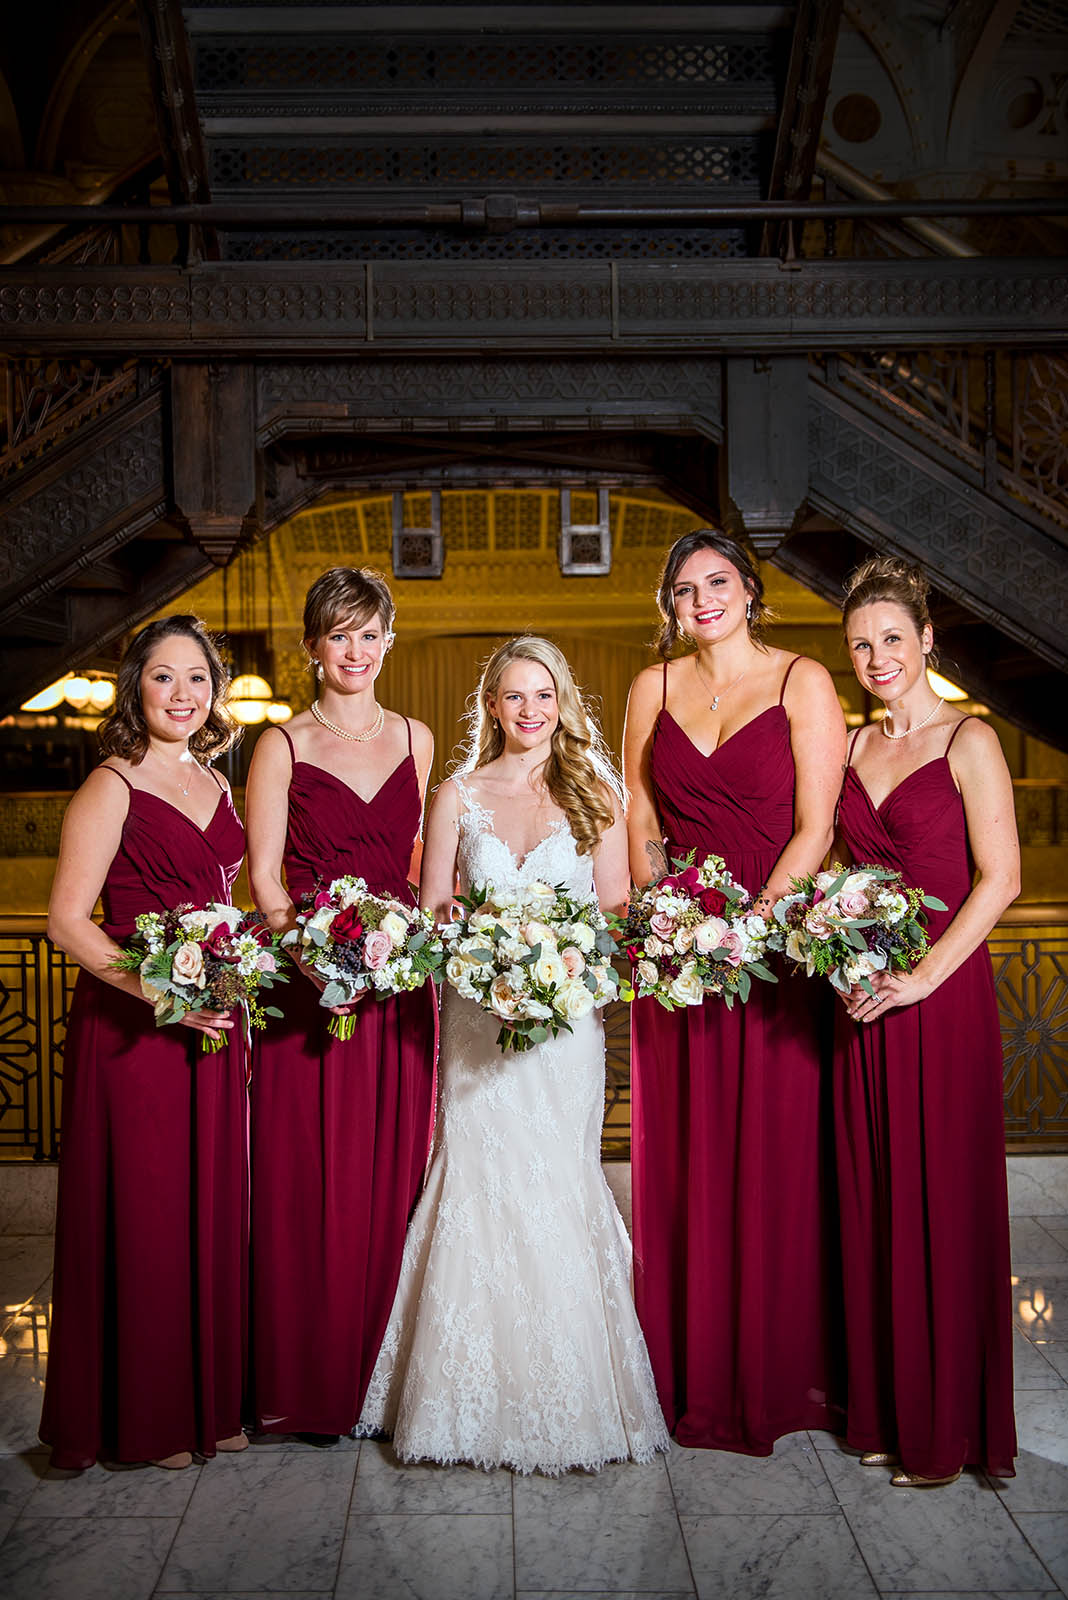 Bridal party bridesmaids crimson red dresses